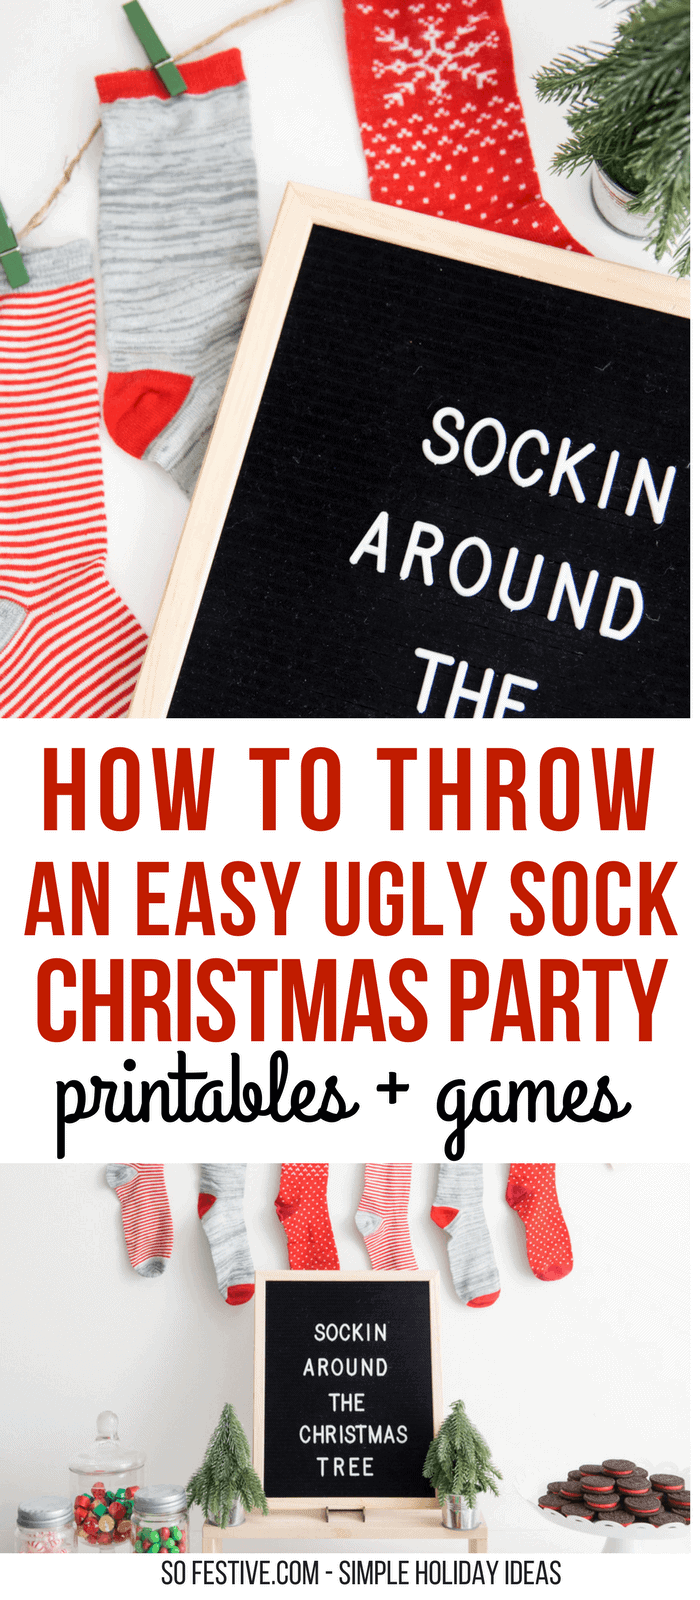 Christmas-party-idea-ugly-sock-party-printables-games